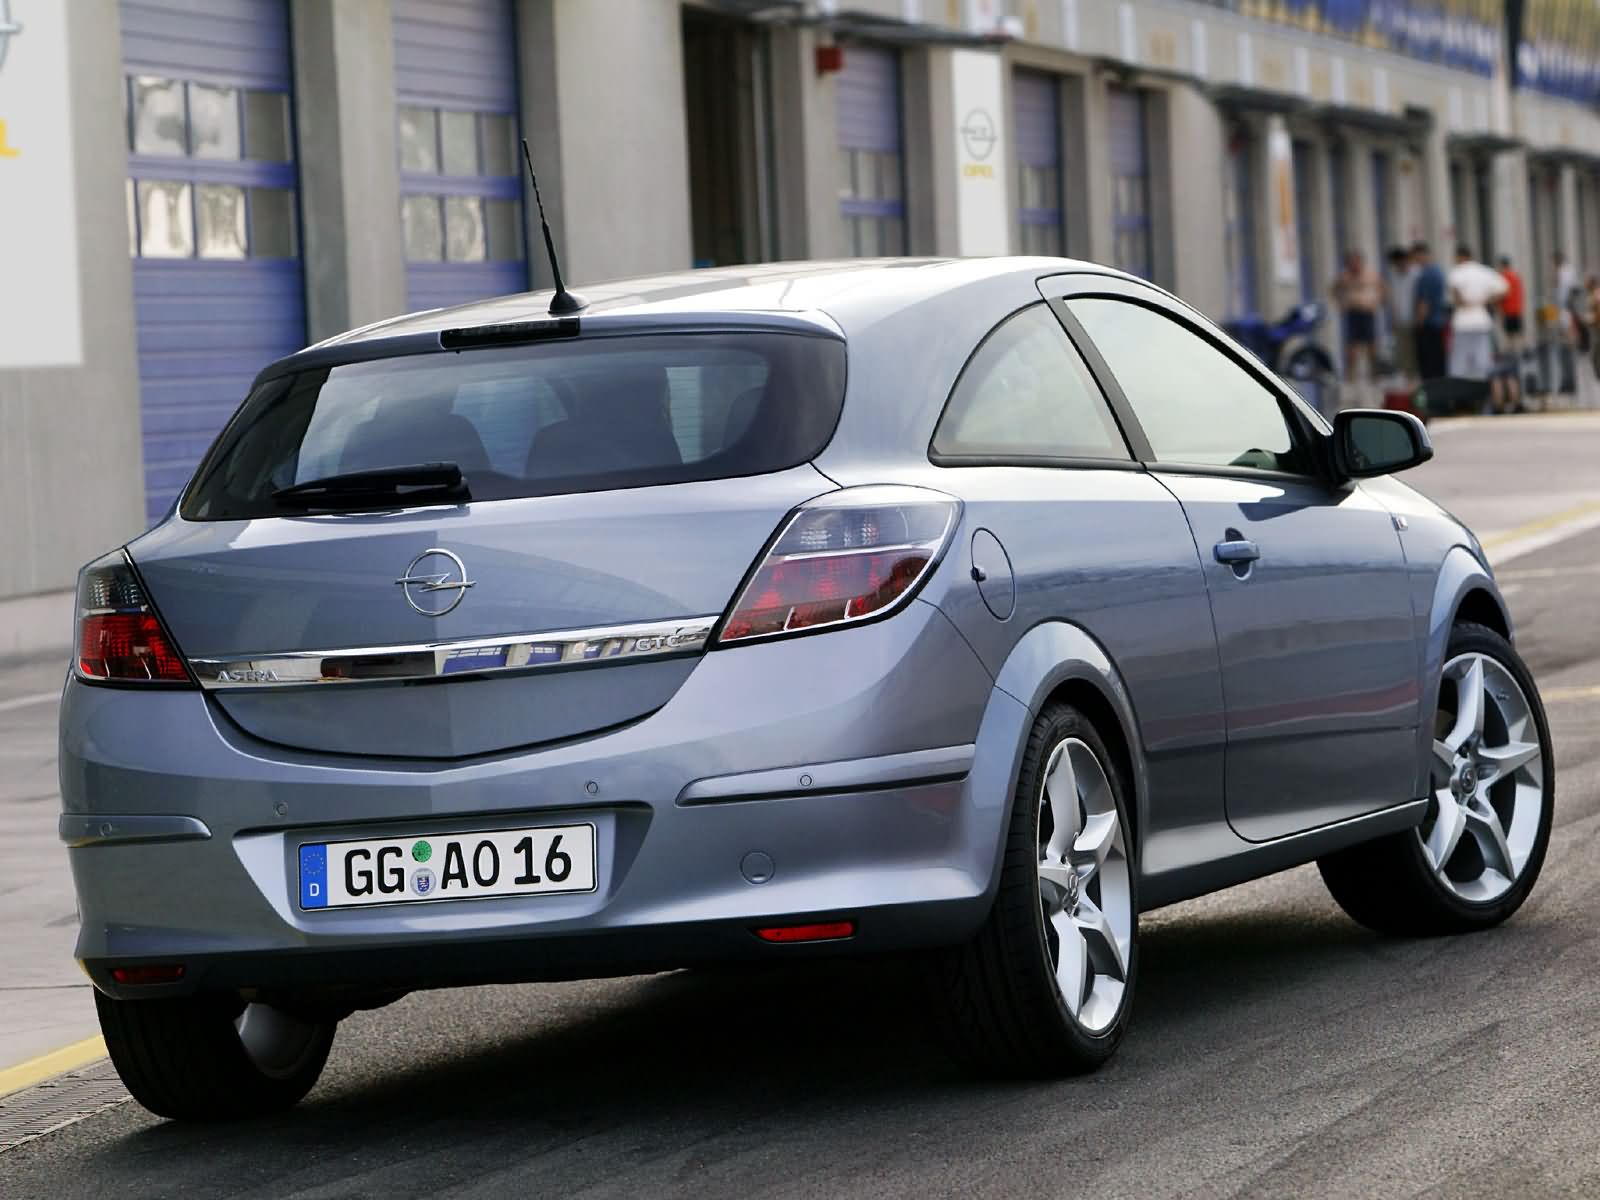 opel astra h gtc 2005 opel astra h gtc 2005 photo 12 car in pictures car photo gallery. Black Bedroom Furniture Sets. Home Design Ideas